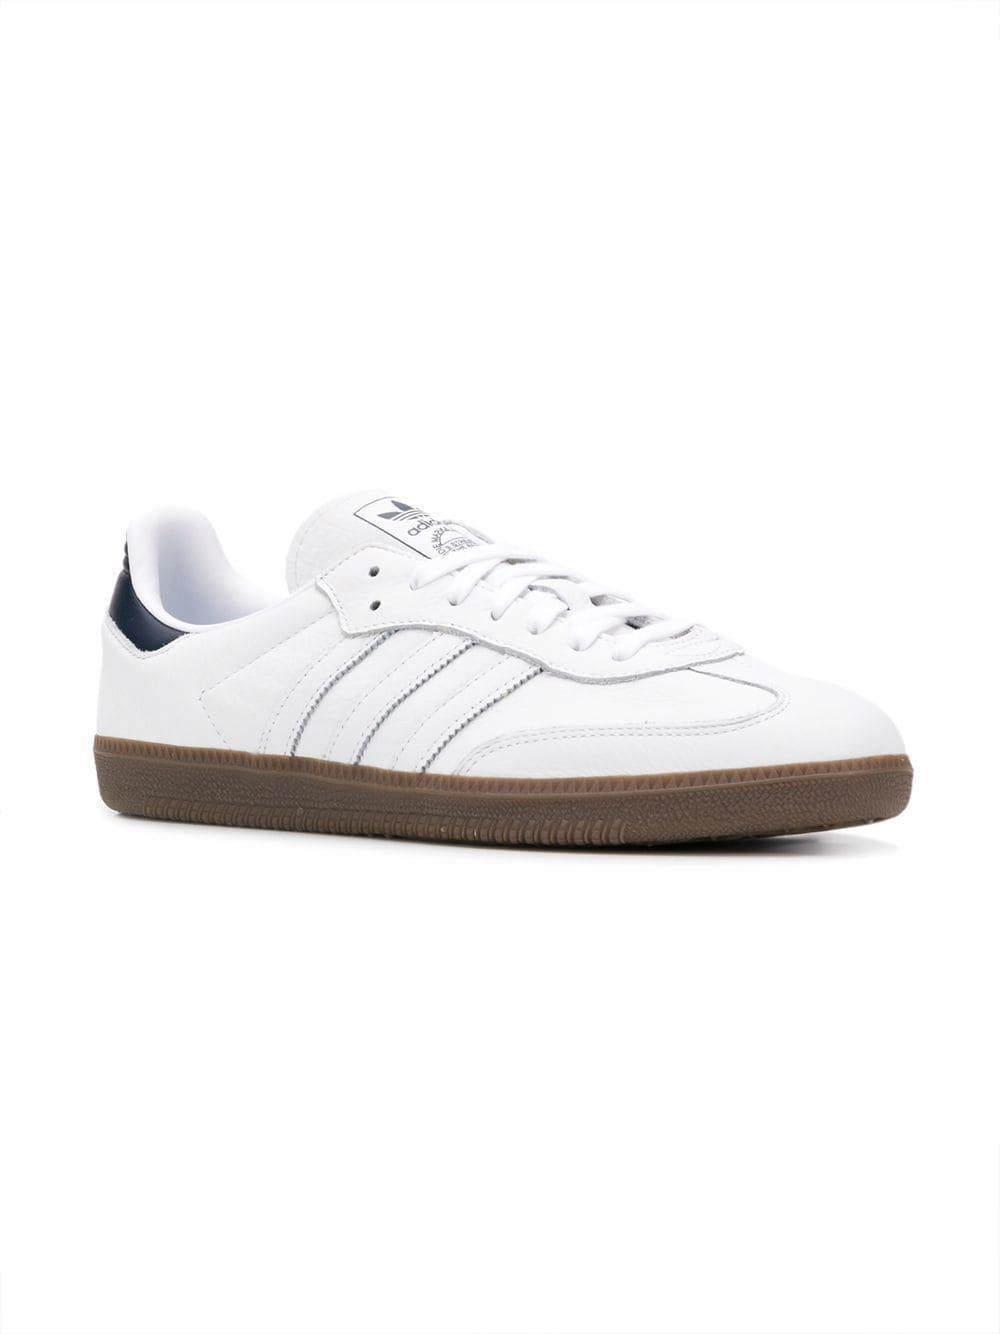 bc6c921e0a7 Adidas - White Samba Og Sneakers for Men - Lyst. View fullscreen